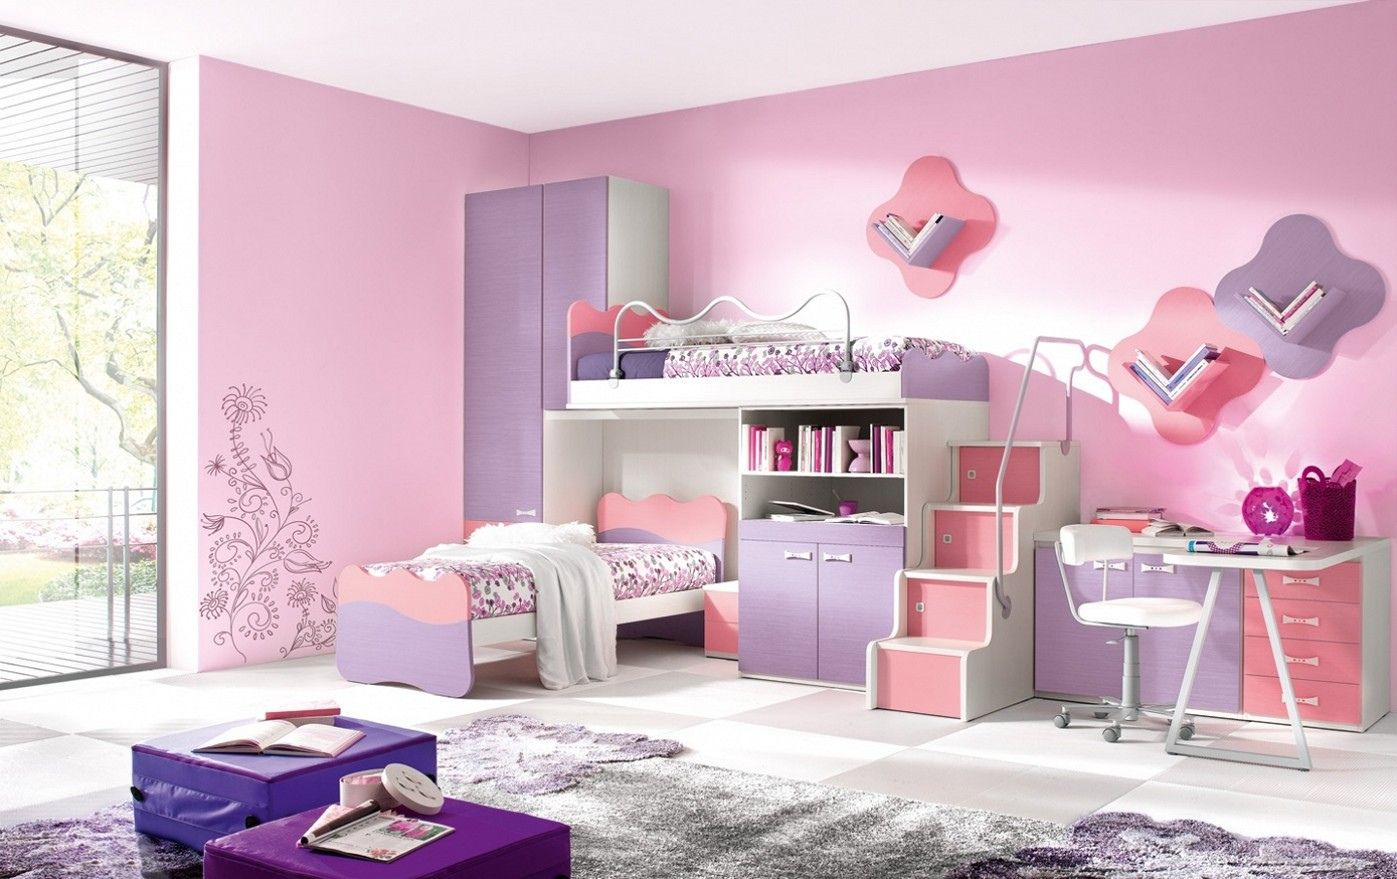 99+ Paint Colors for Girl Rooms - Ideas to Decorate Bedroom Check ...